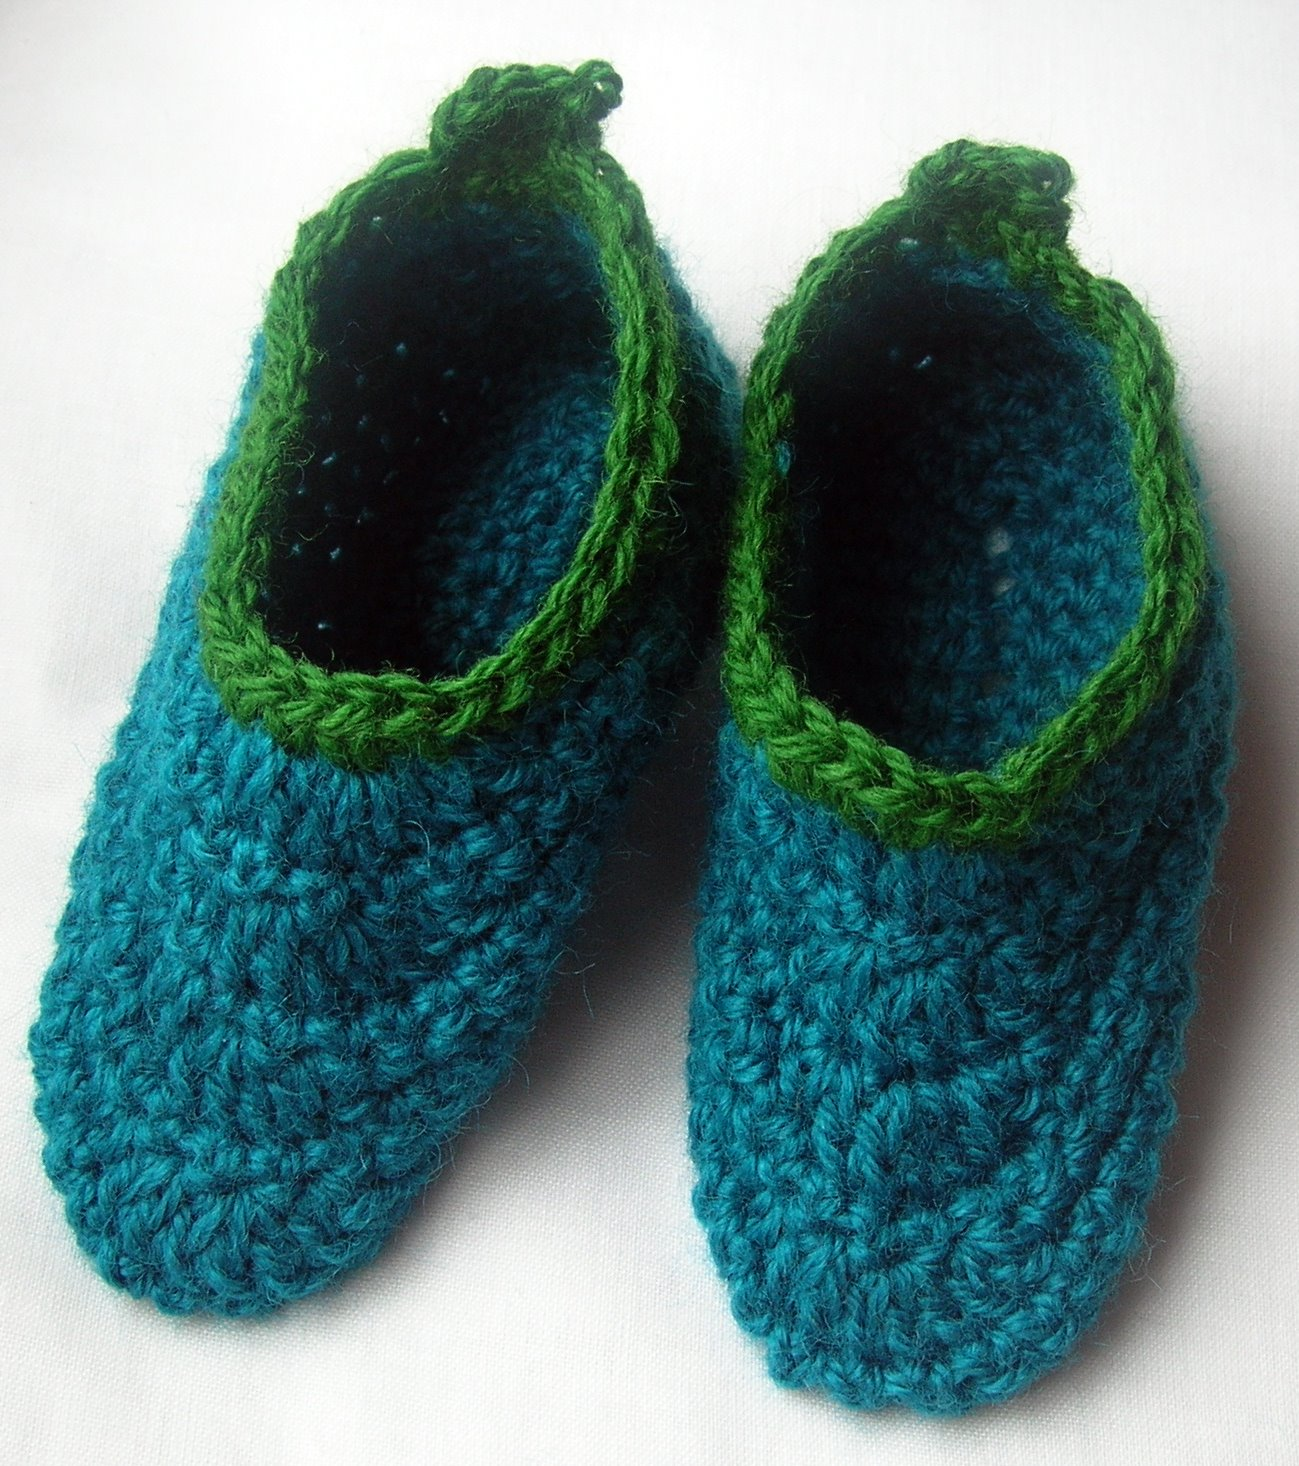 Crochet Slippers : HandSpinning Dot Com: Kids Crochet Slippers With Handspun Yarn